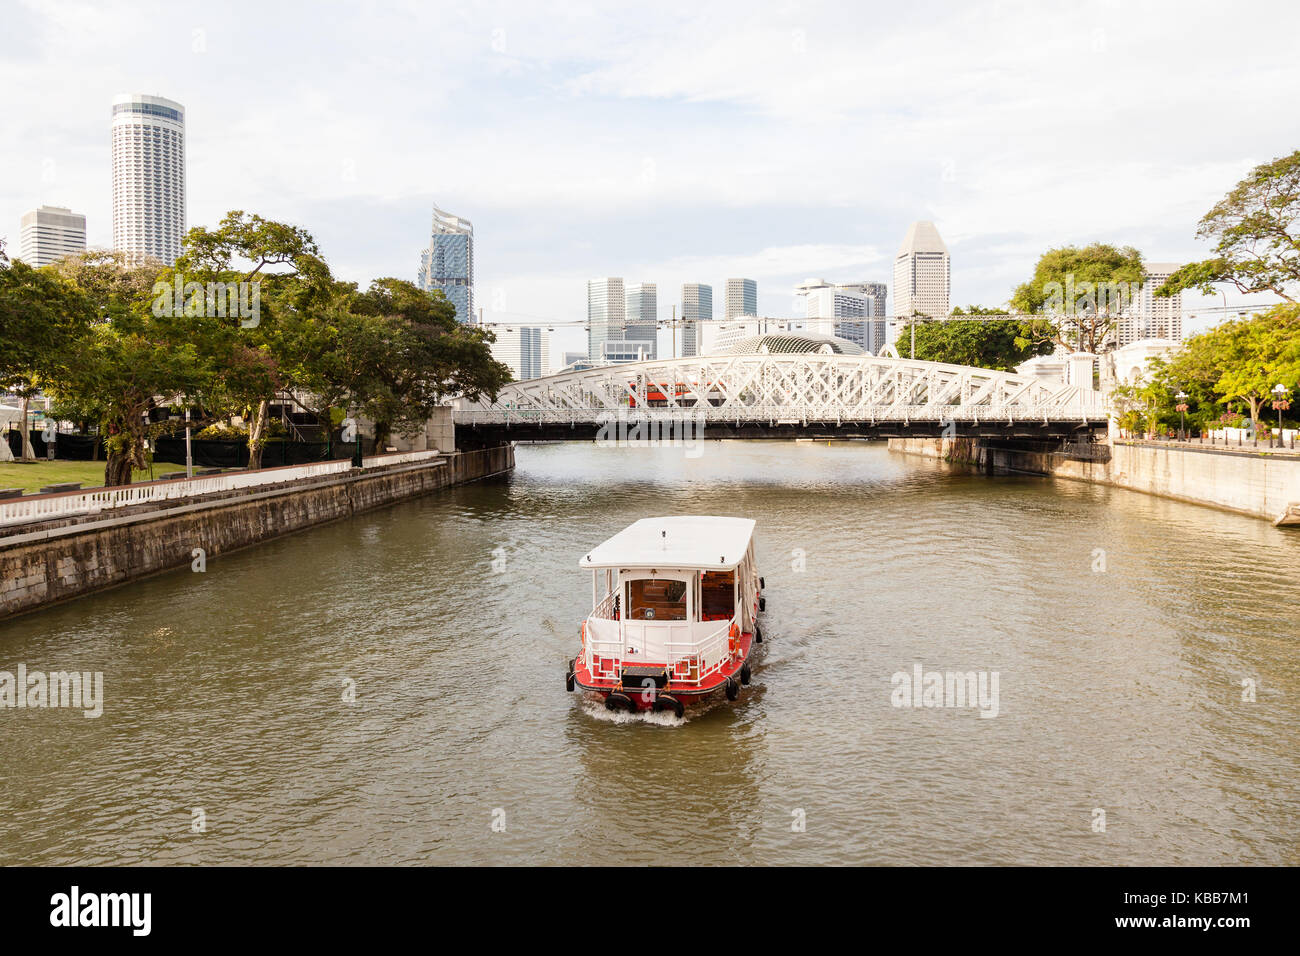 A boat ply the Singapore River on Boat Quay toward Anderson Bridge, with the city's skyline in the background. - Stock Image